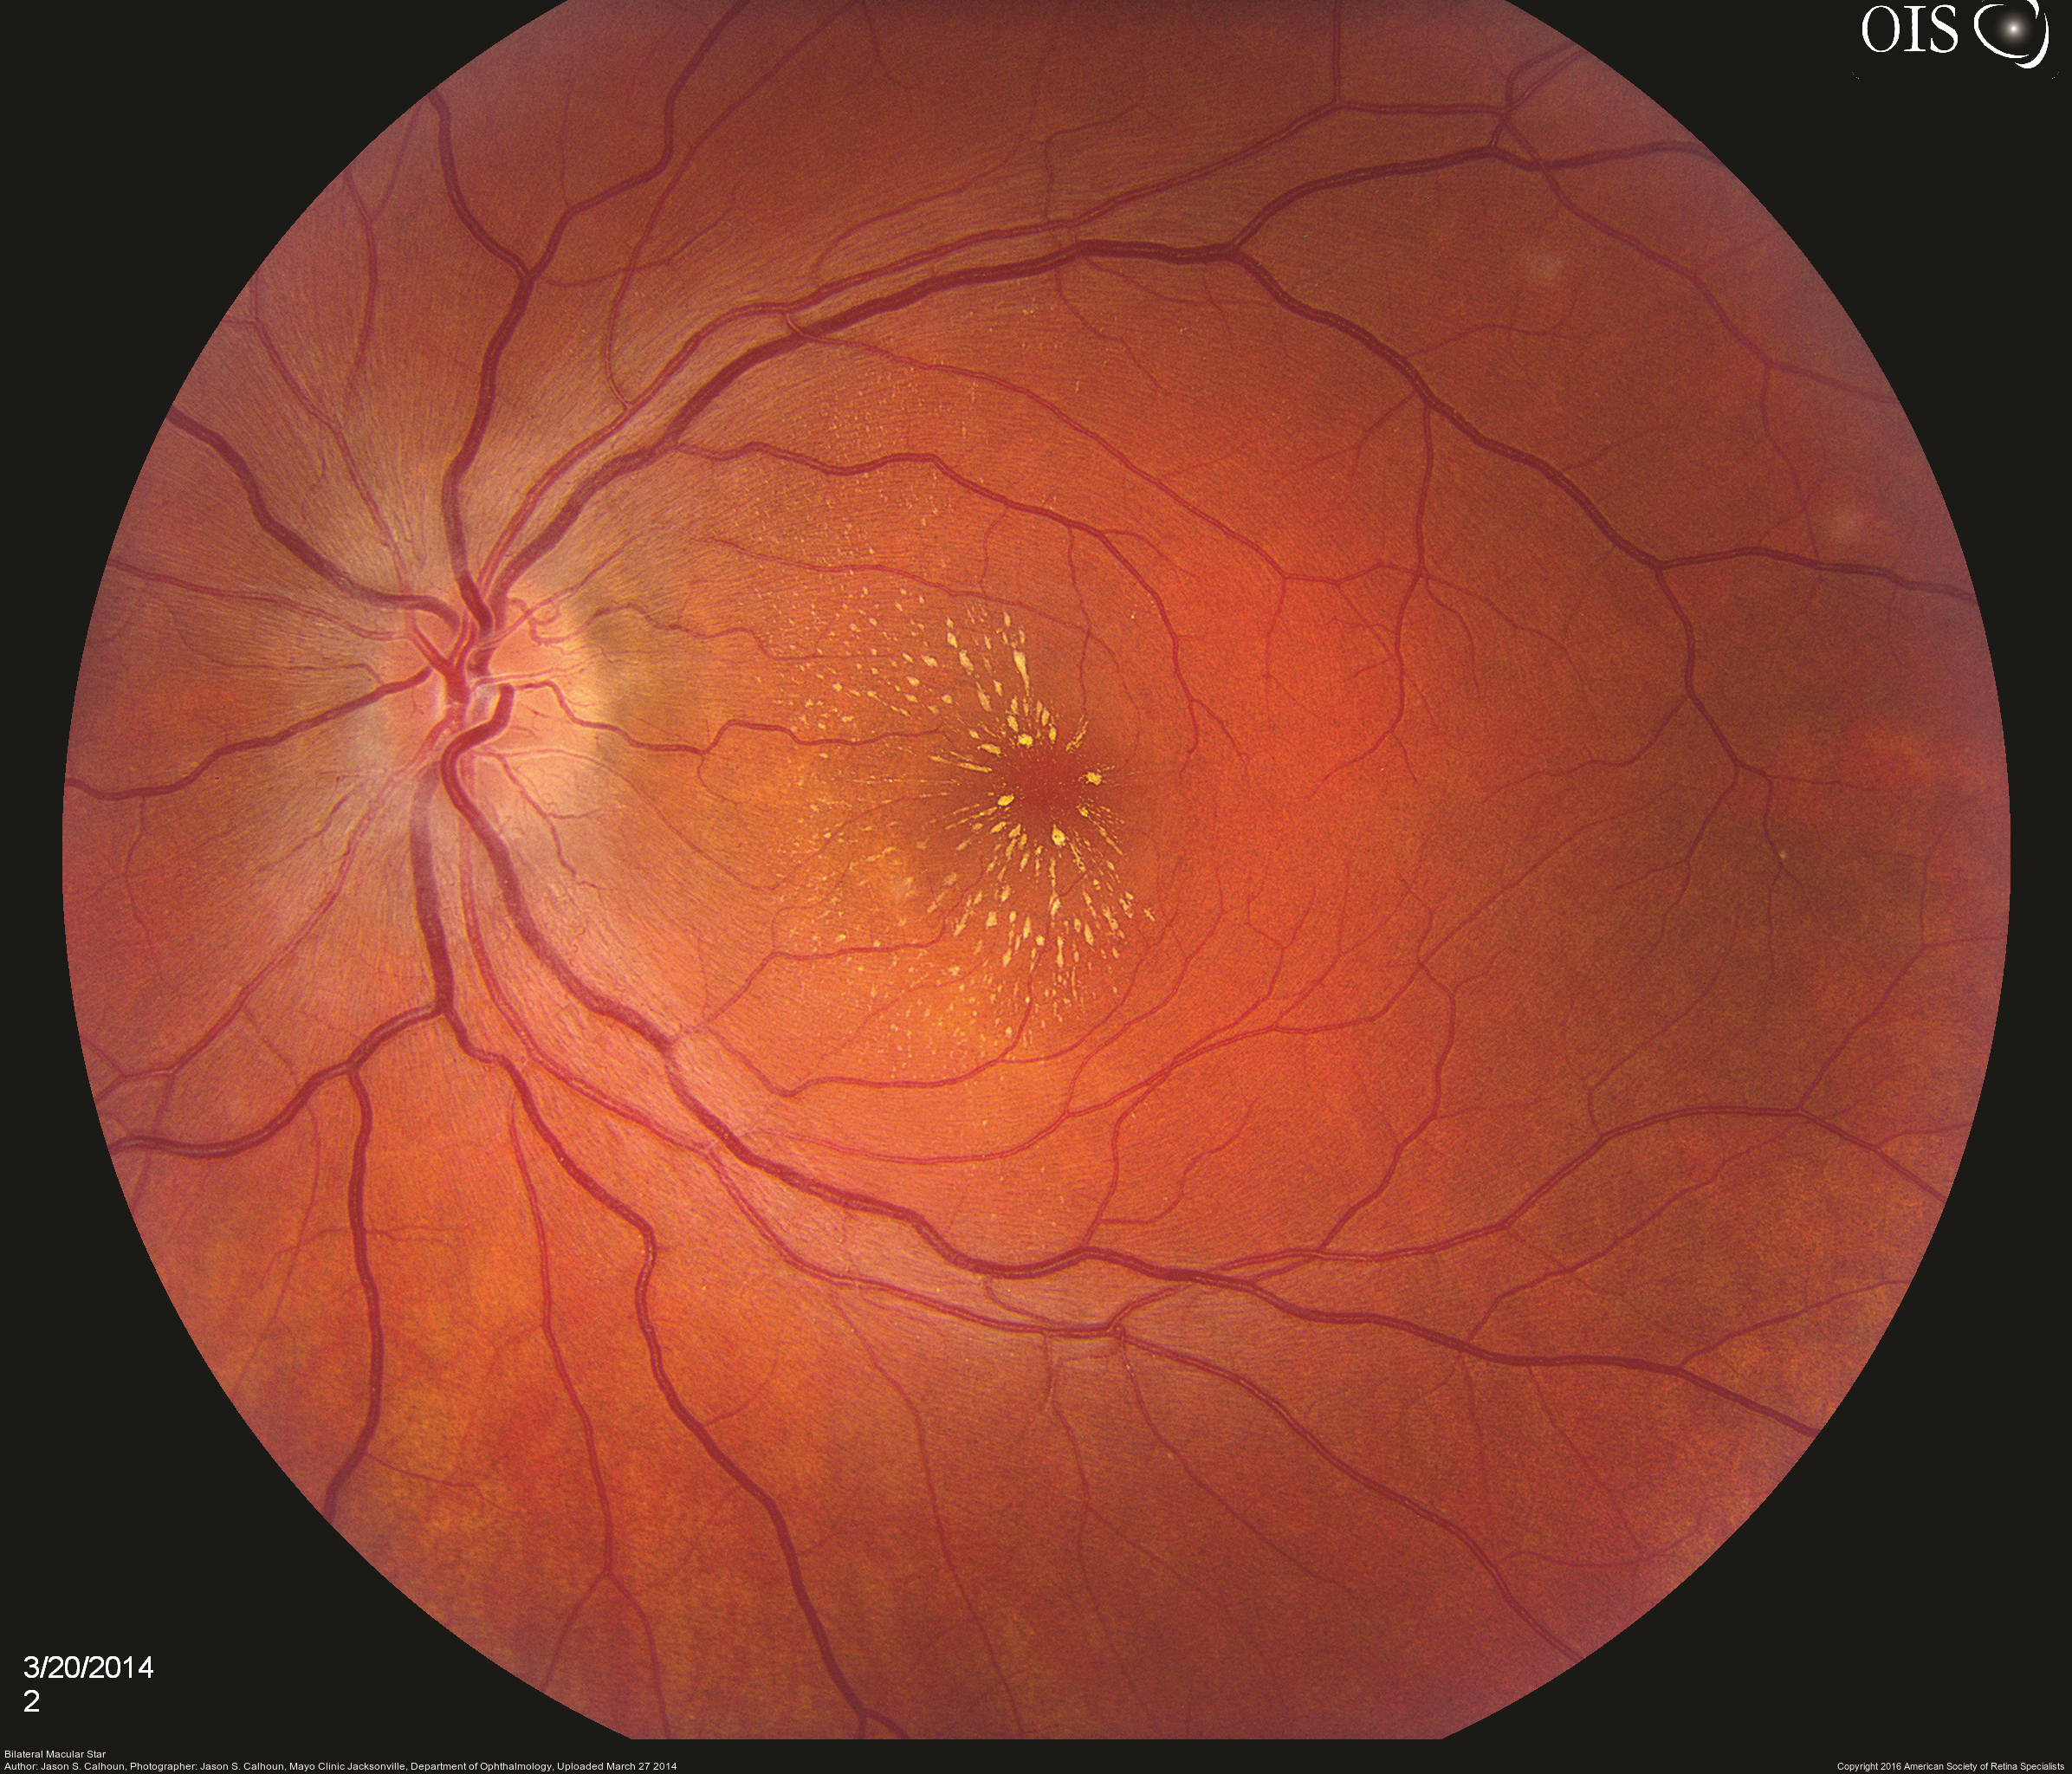 Infectious Retinitis - The American Society of Retina Specialists